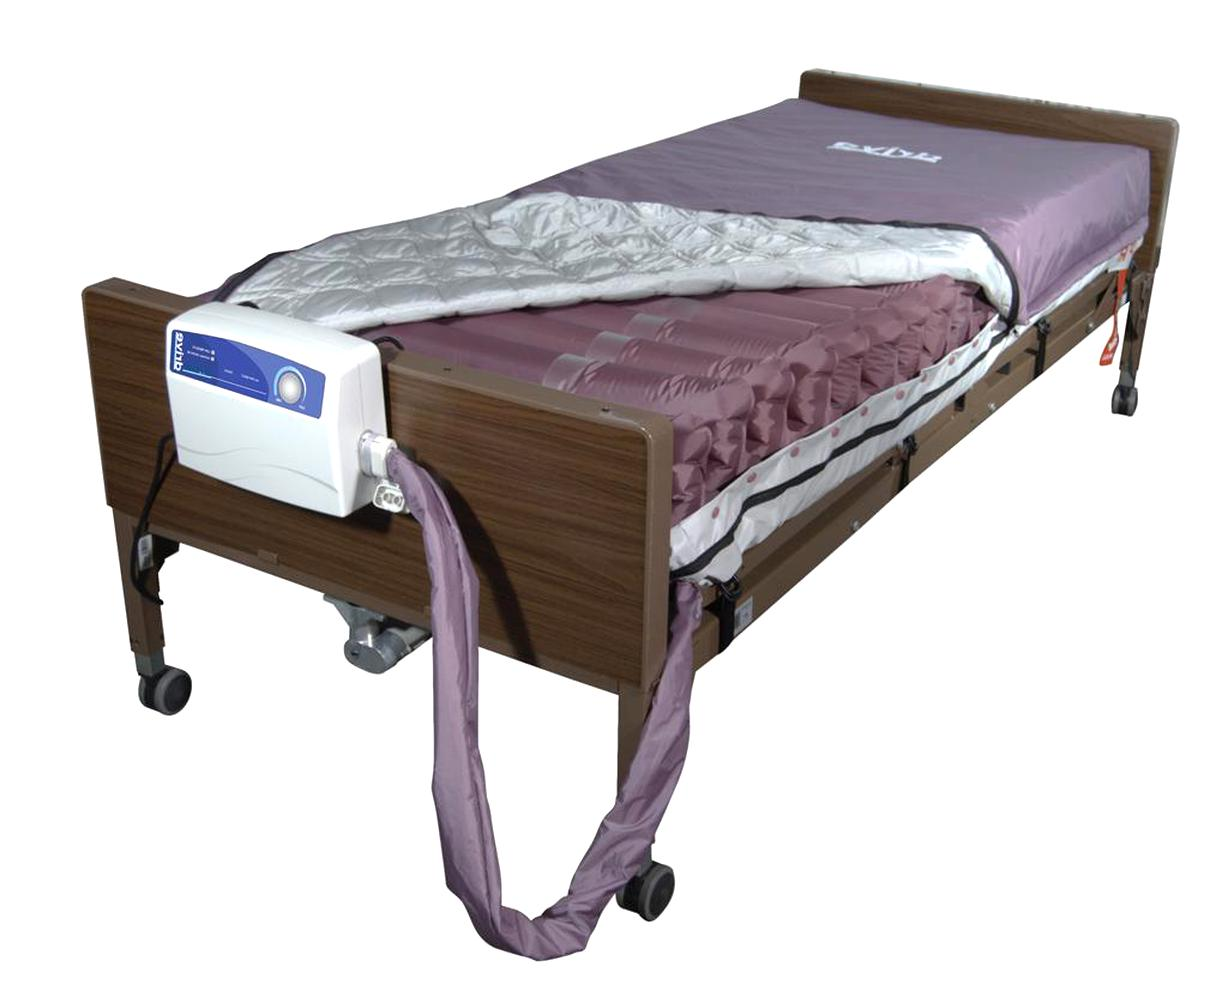 low air loss mattress for sale